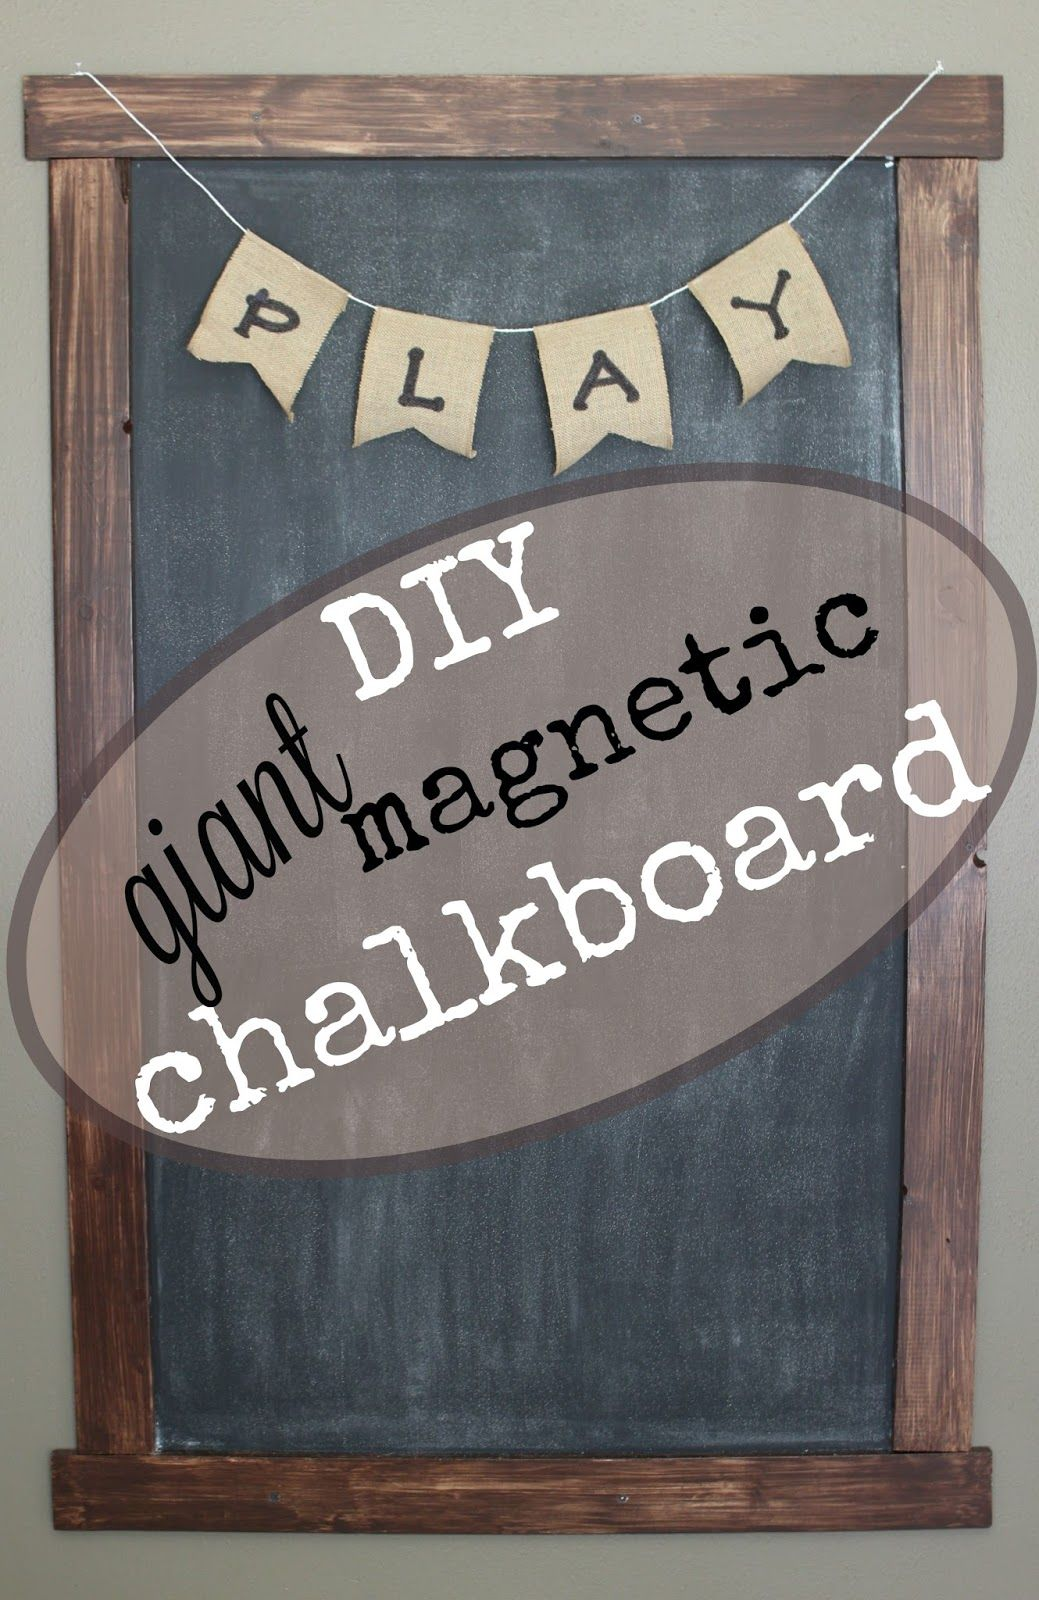 DIY Giant Magnetic Framed Chalkboard | DIY | Pinterest